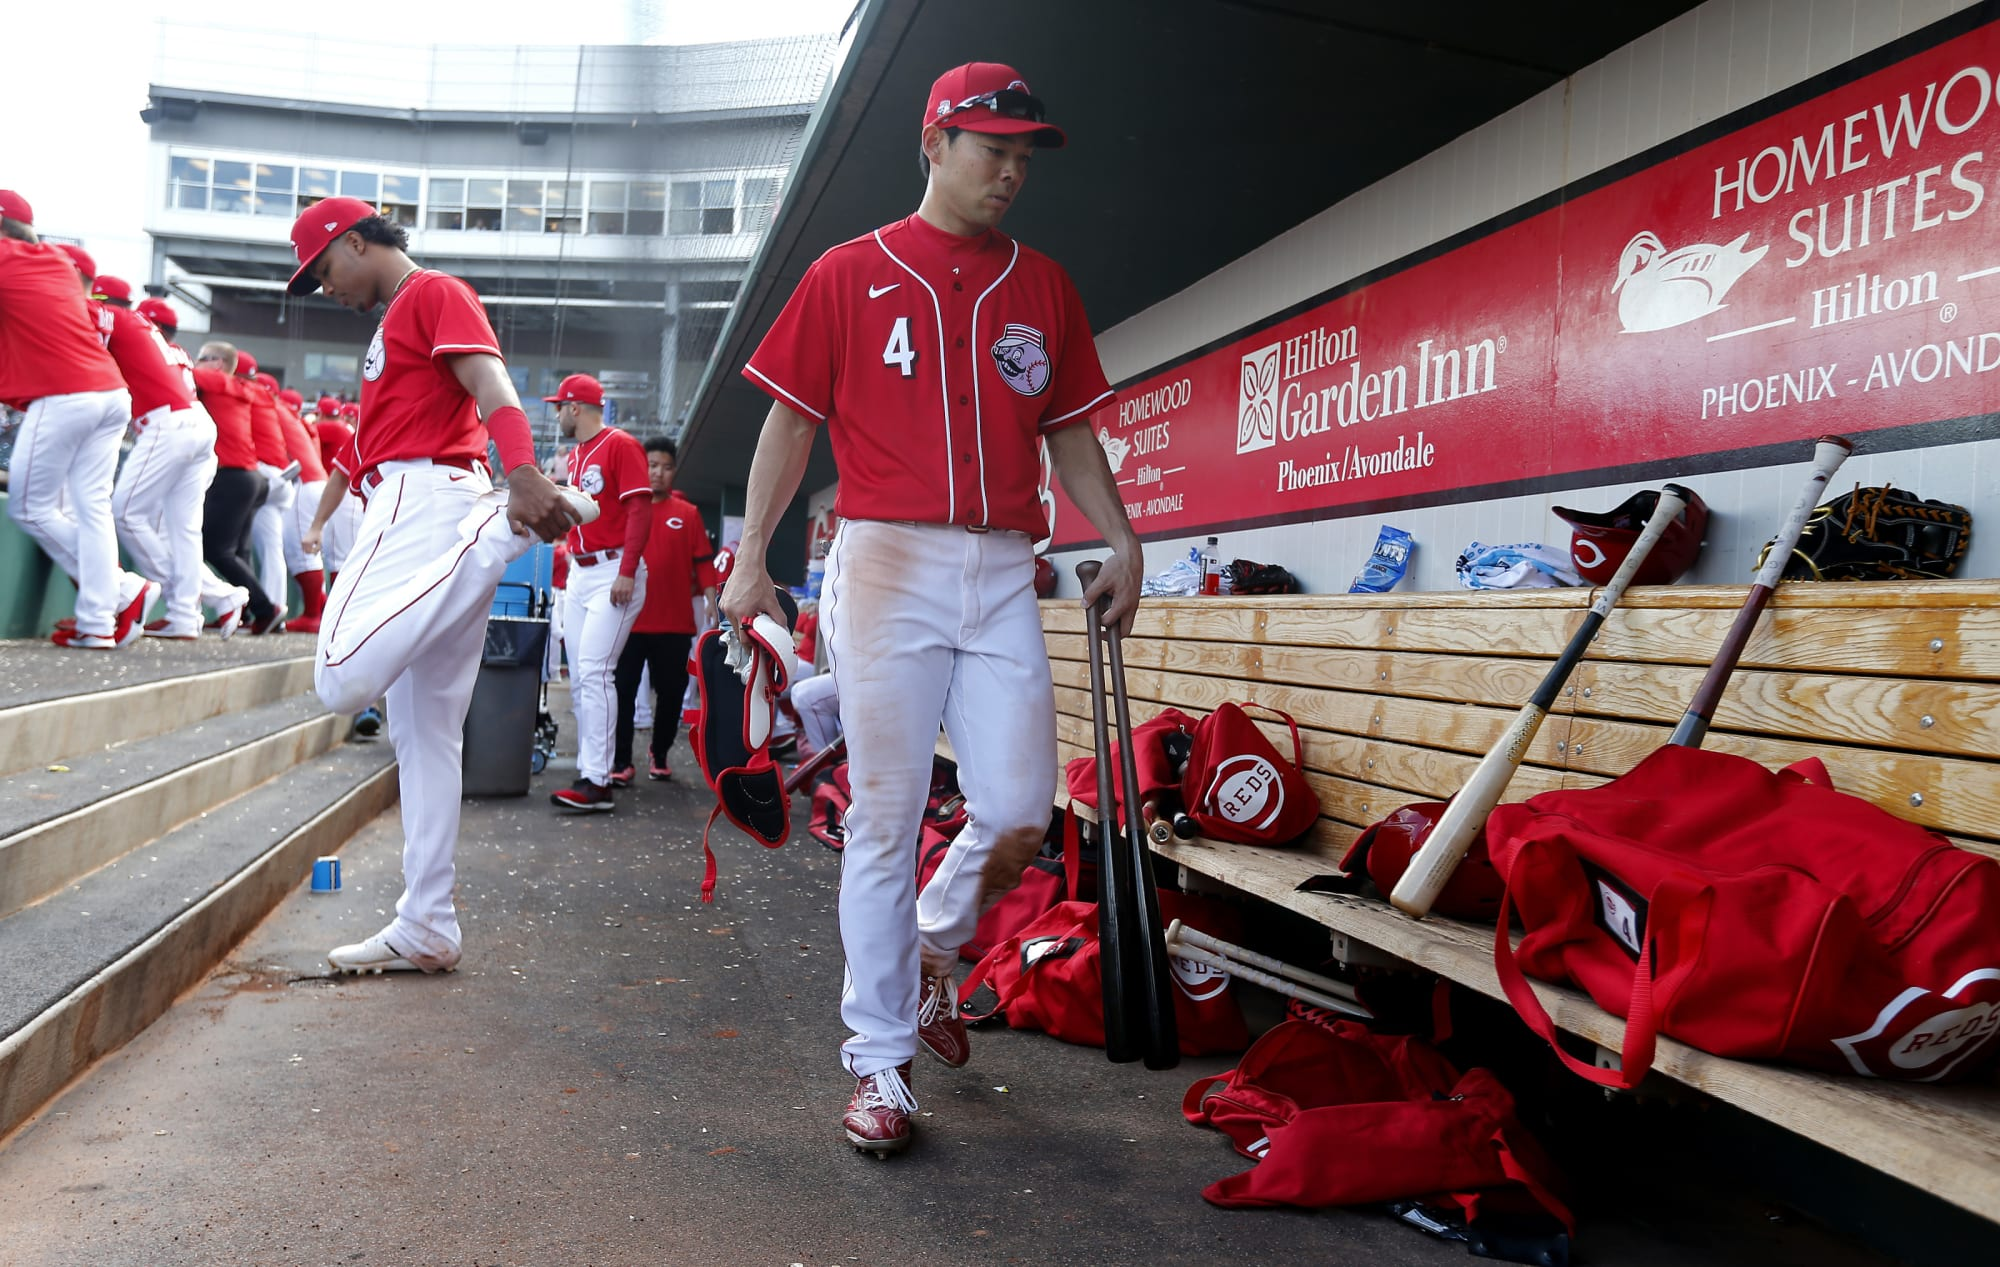 This past winter's signings will propel the Cincinnati Reds to the playoffs